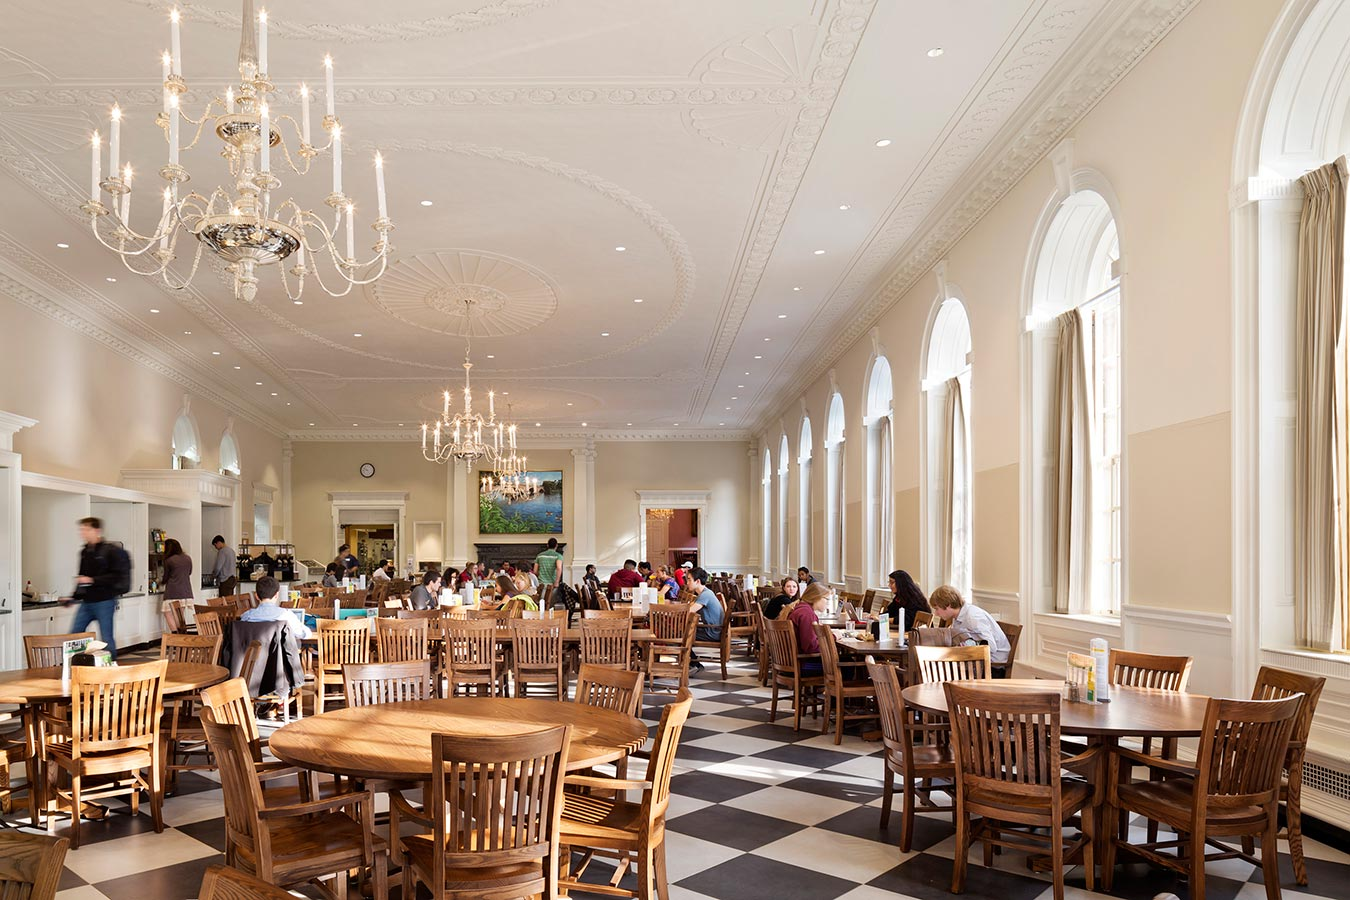 <p>Many of the historic rooms had lost some of their original luster over time, and the restoration takes them back to their original grandeur while adding modern conveniences. A guiding principle was the seamless integration of technology�for instance, presentations can now be made in the dining hall via screens hidden in the ceiling. <br><small>© Michael Moran/OTTO</small></p>